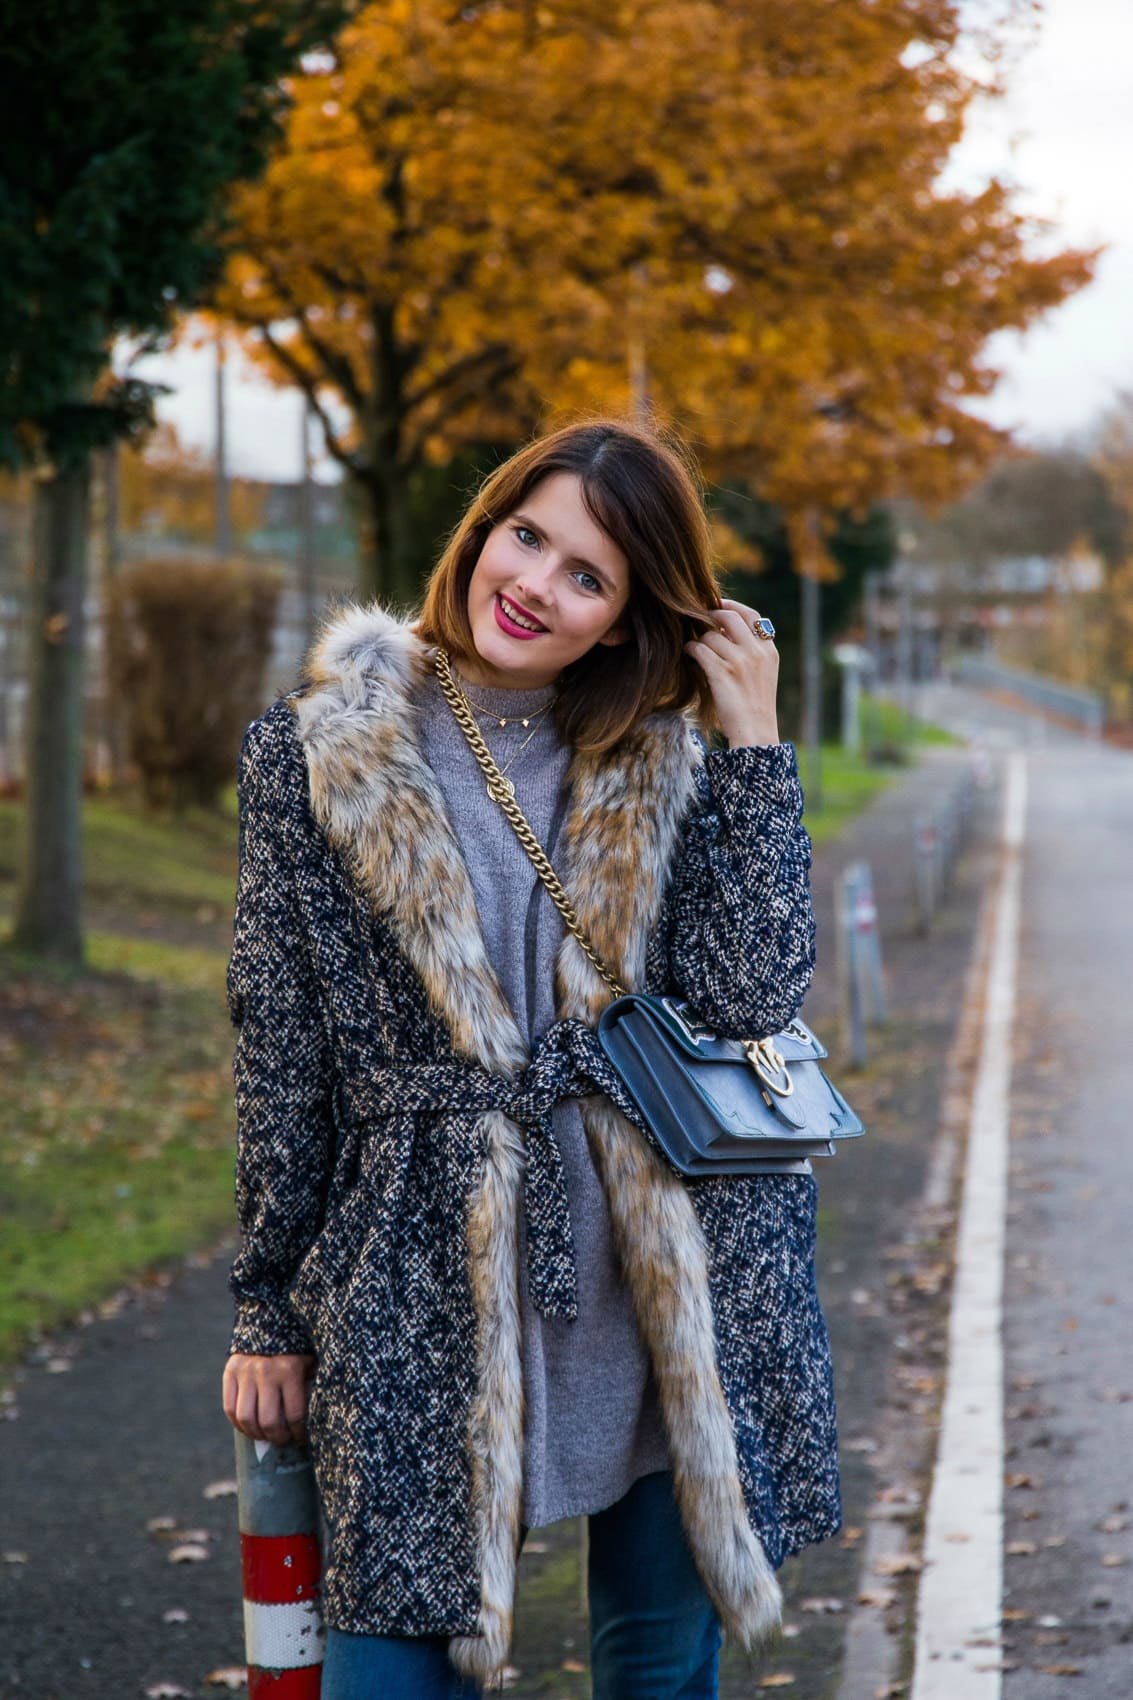 After Christmas Outfit - Layering Look mit Perlen Jeans, Strick und Pinko Tasche Love me tender